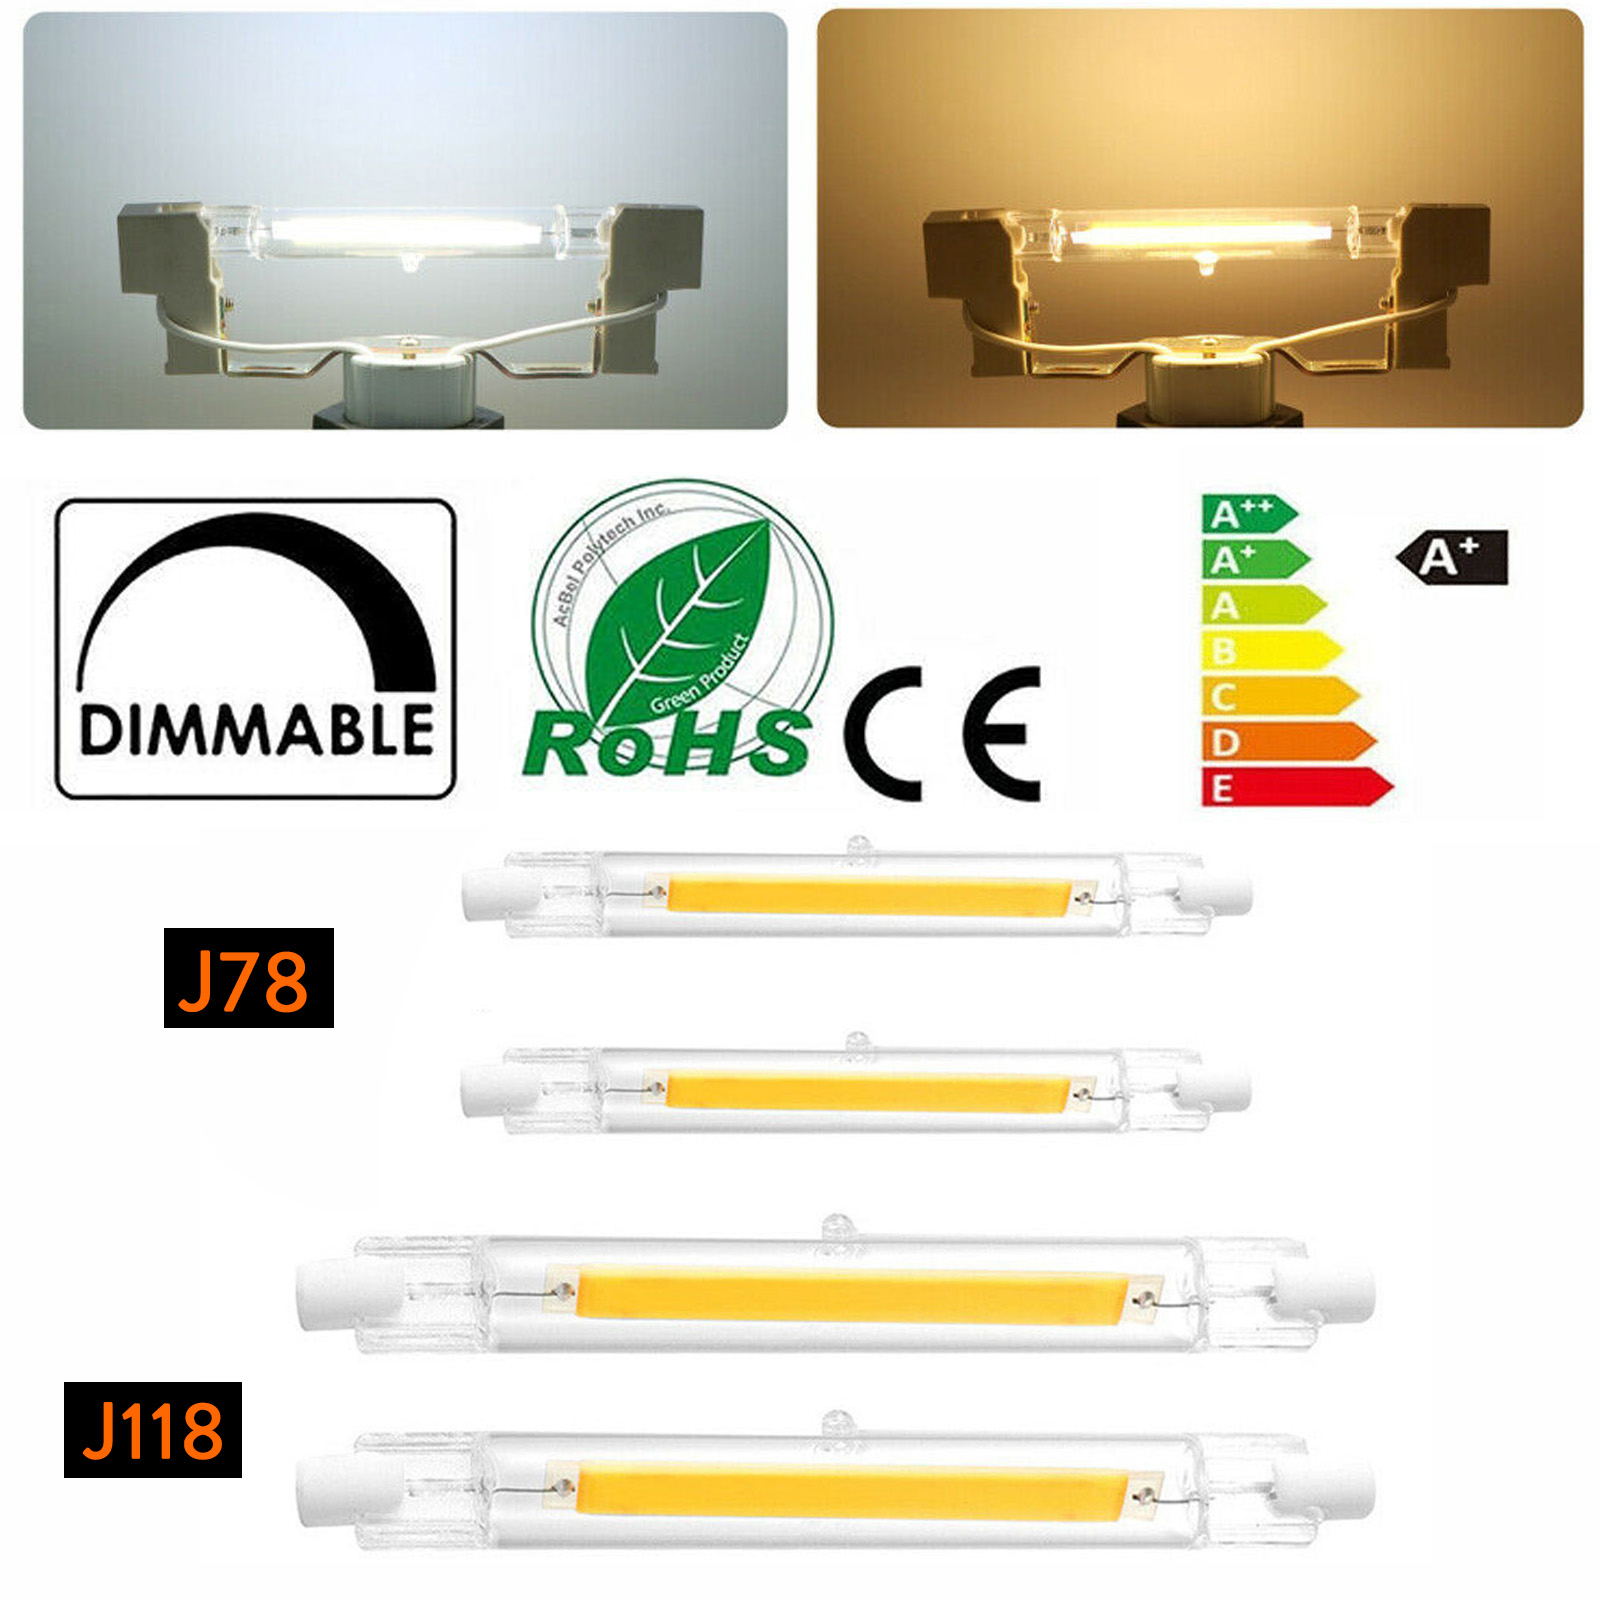 118mm J118 78mm J78 6W 12W 20W 110V 220V <font><b>R7s</b></font> <font><b>R7S</b></font> <font><b>LED</b></font> Glass Ceramic Tube Light Bulbs Dimmable COB Lamp For Foodlight Lighting image